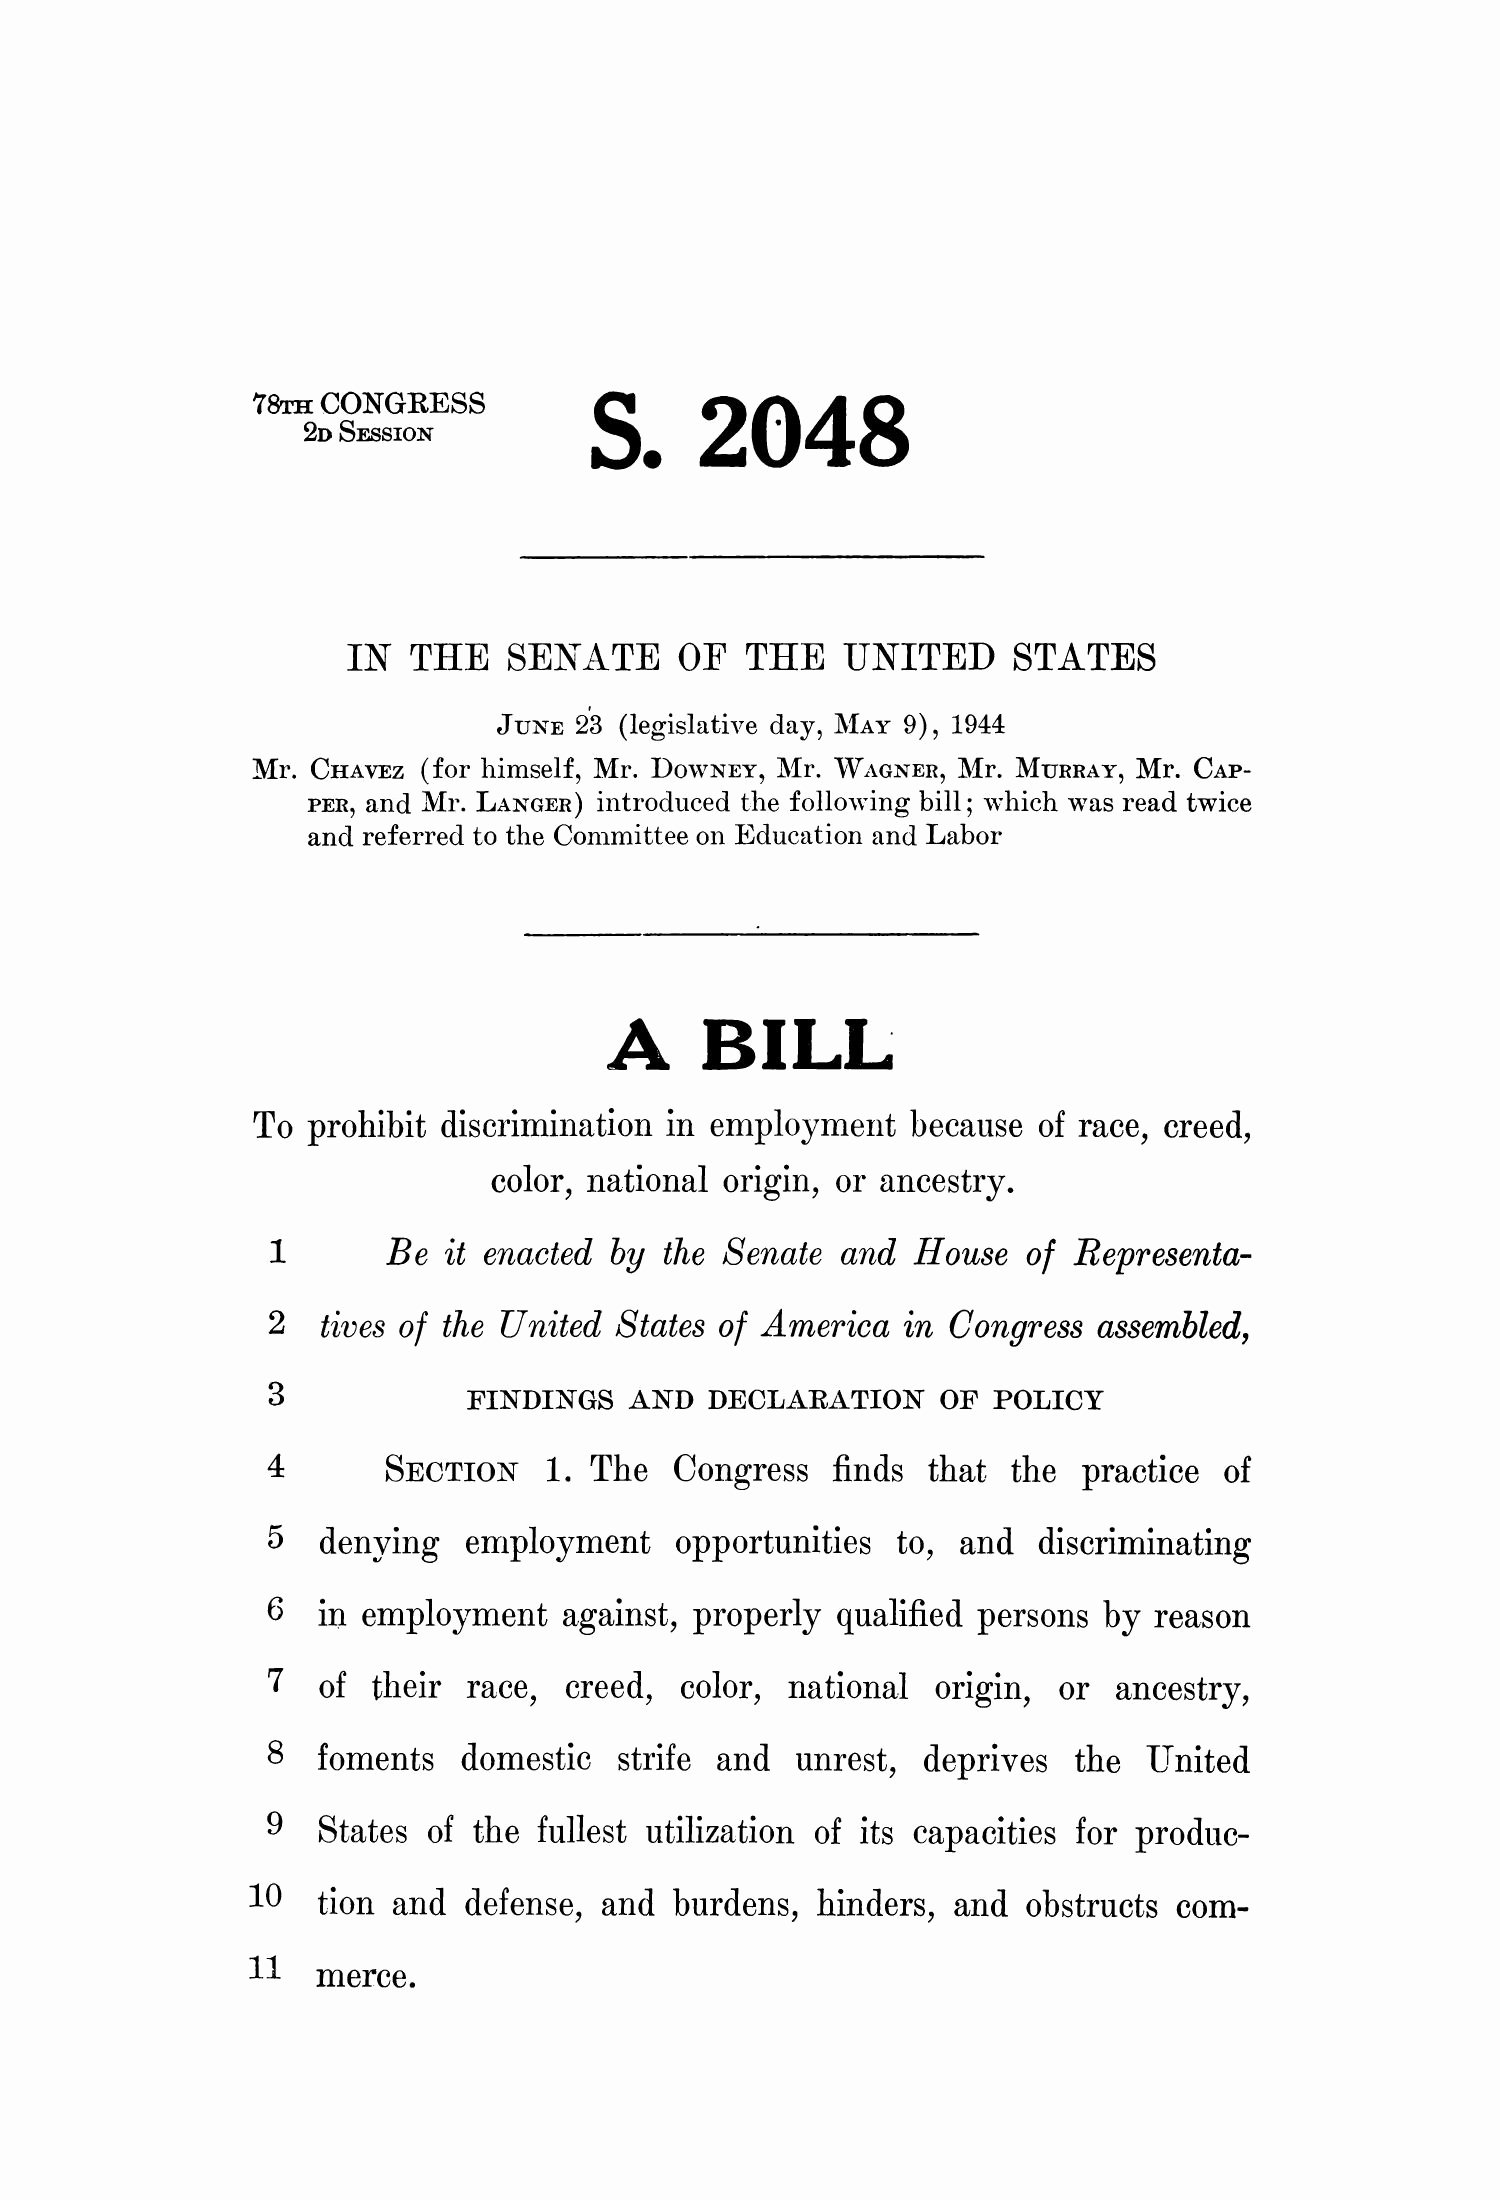 Congress Bill format Luxury 78th U S Congress Second Session Senate Bill 2048 the